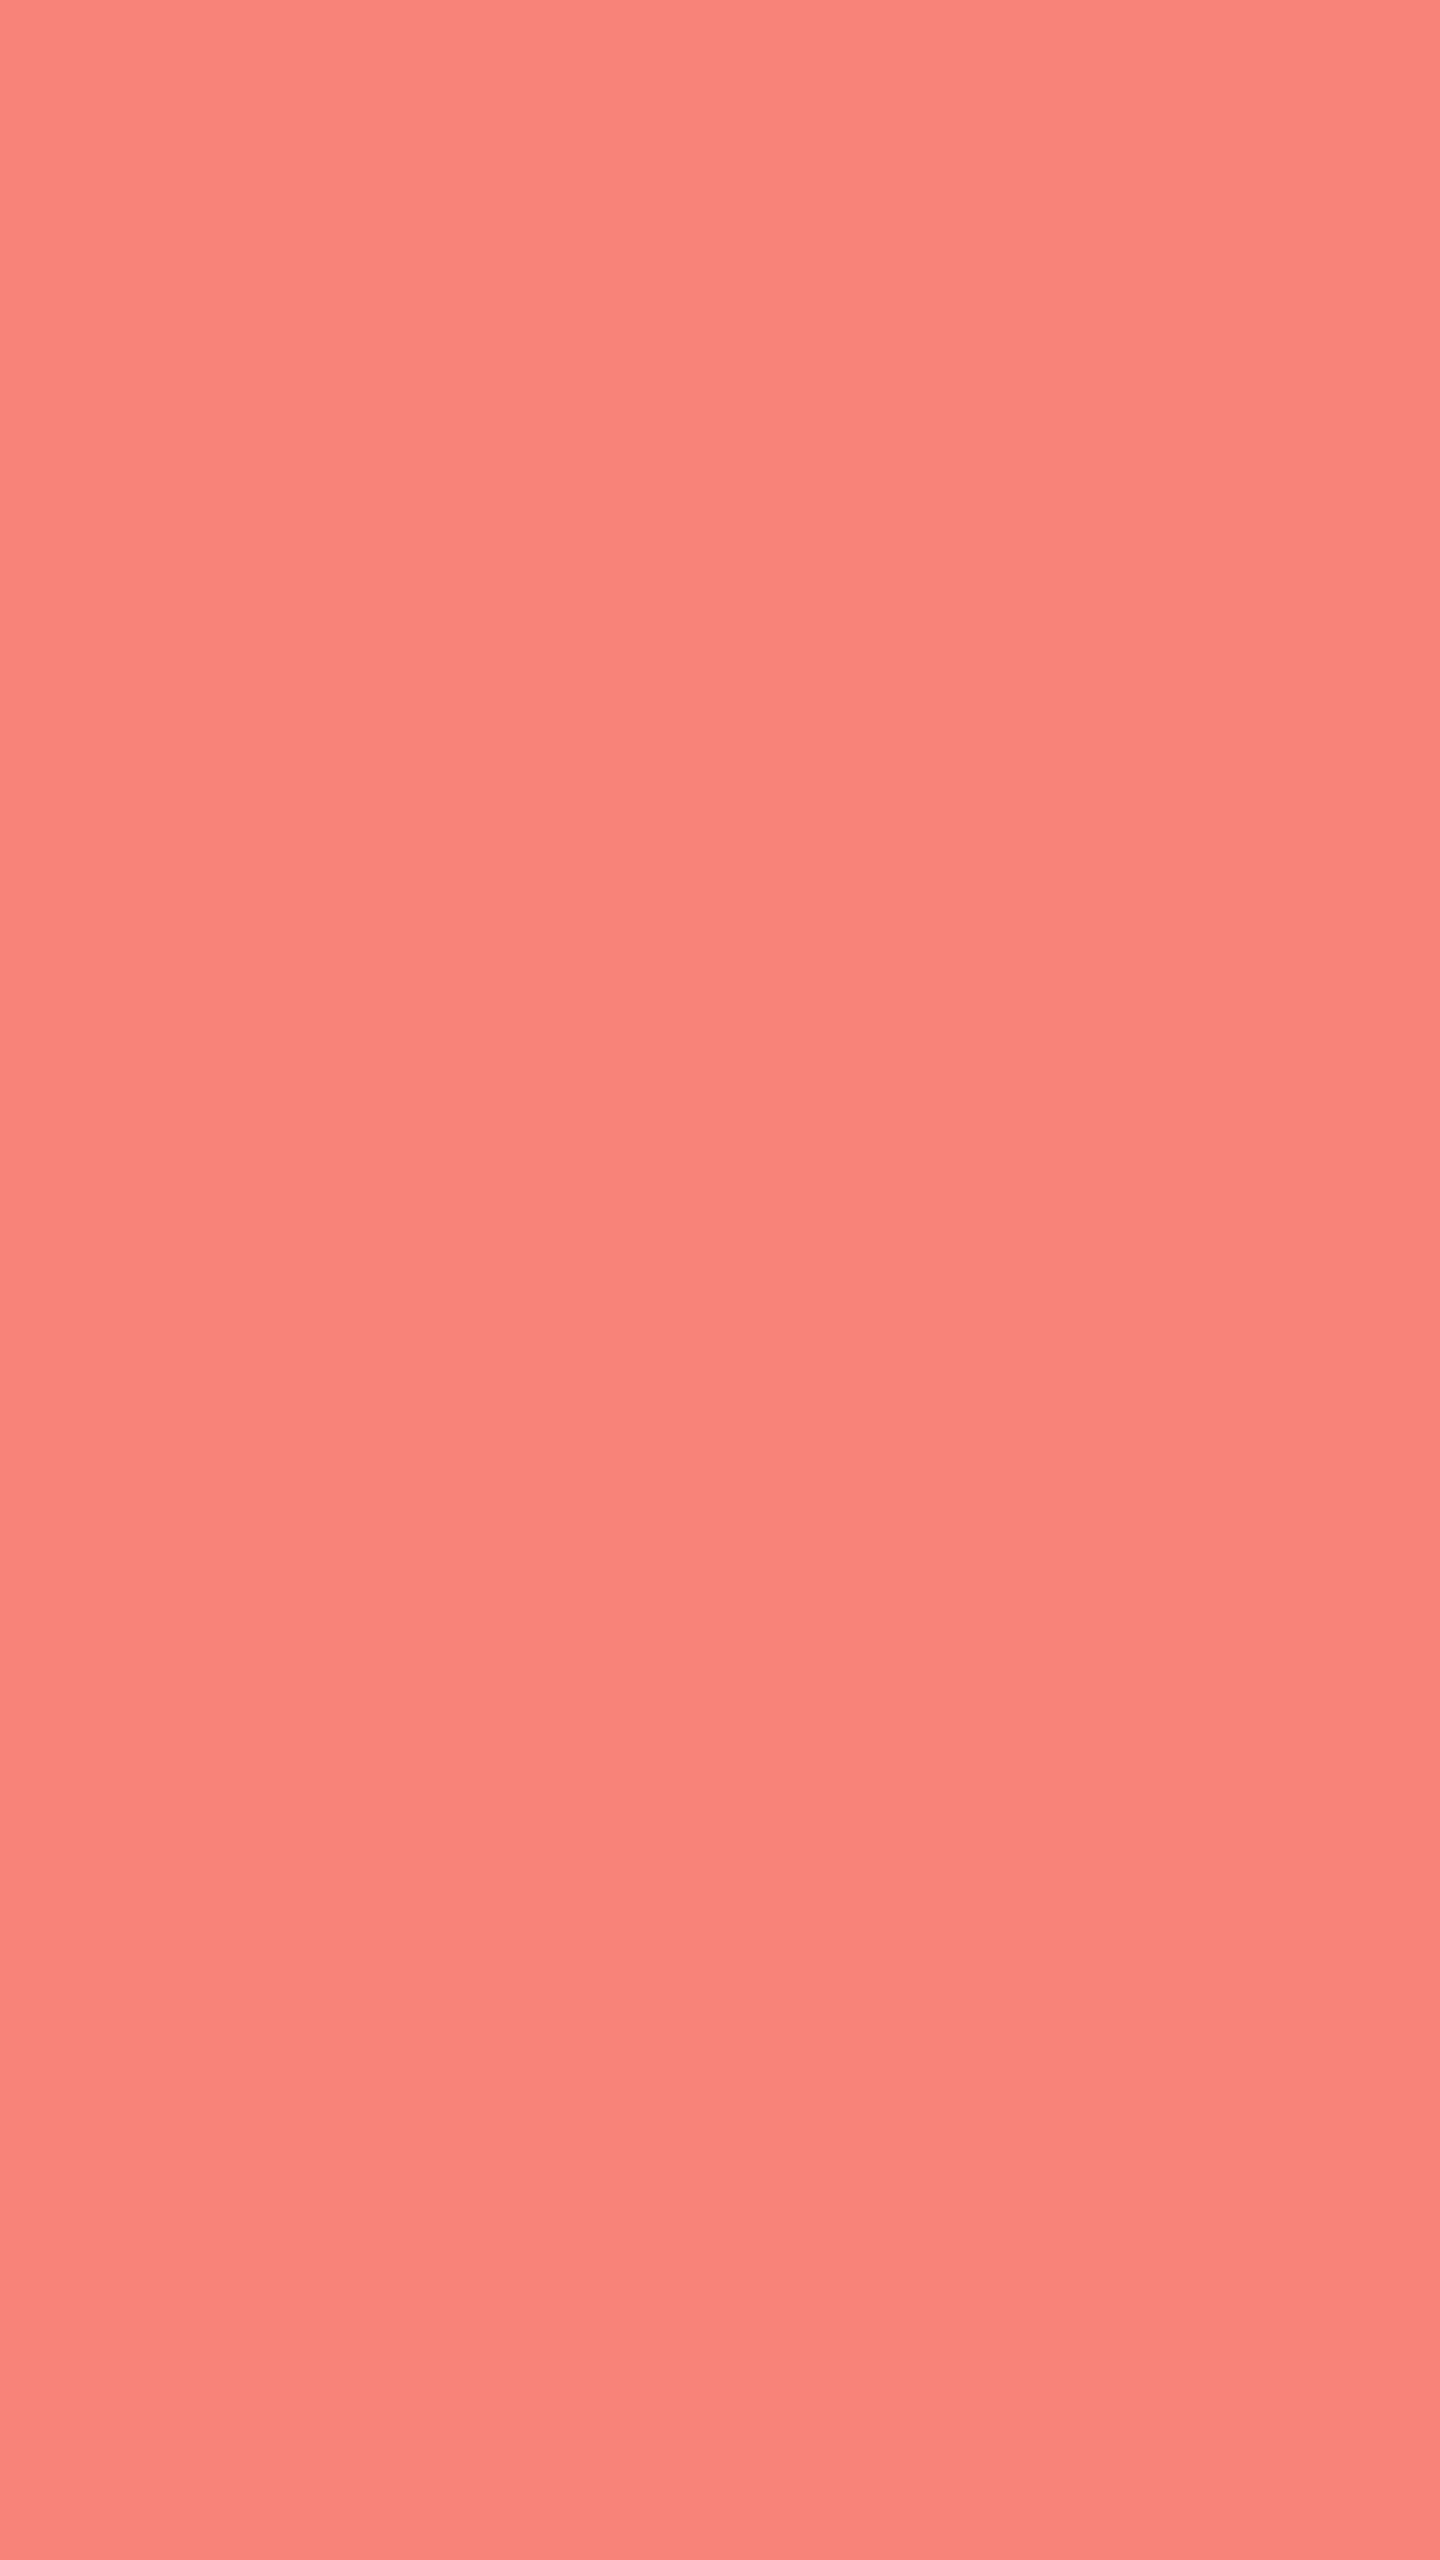 #coral #wallpaper #background #iPhone